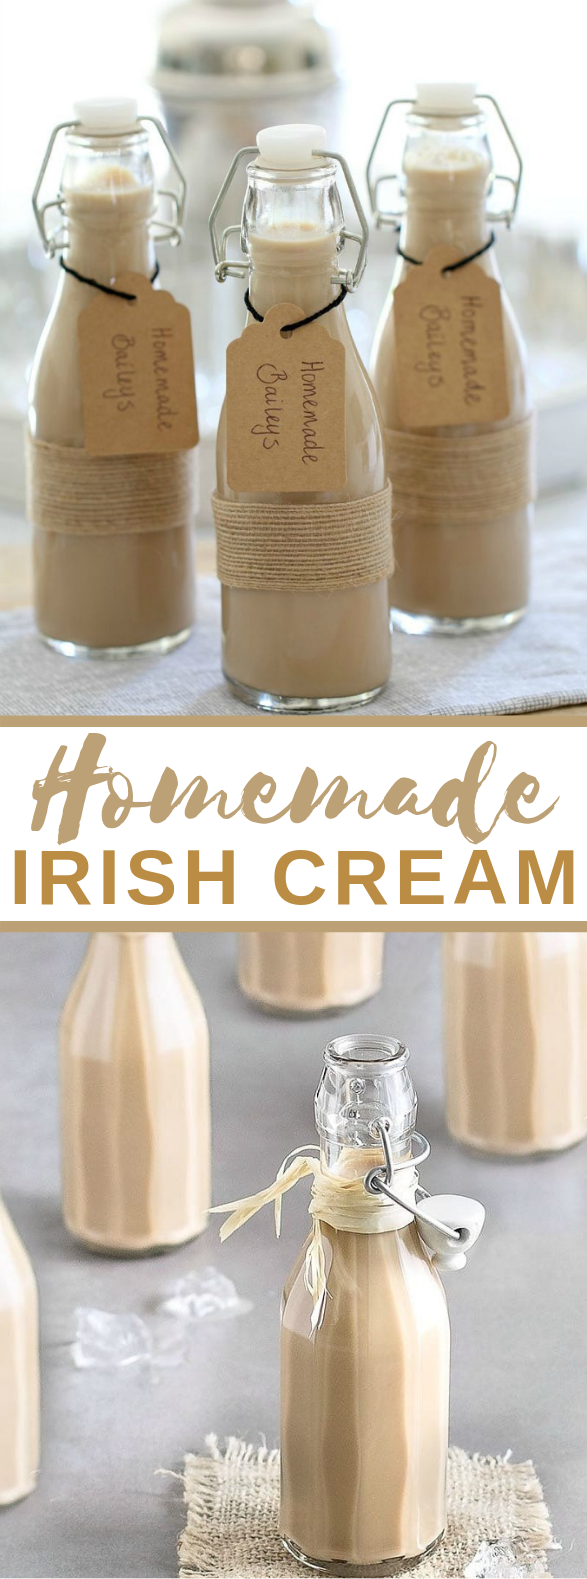 HOMEMADE BAILEYS IRISH CREAM (COPYCAT) #drinks #simplerecipe